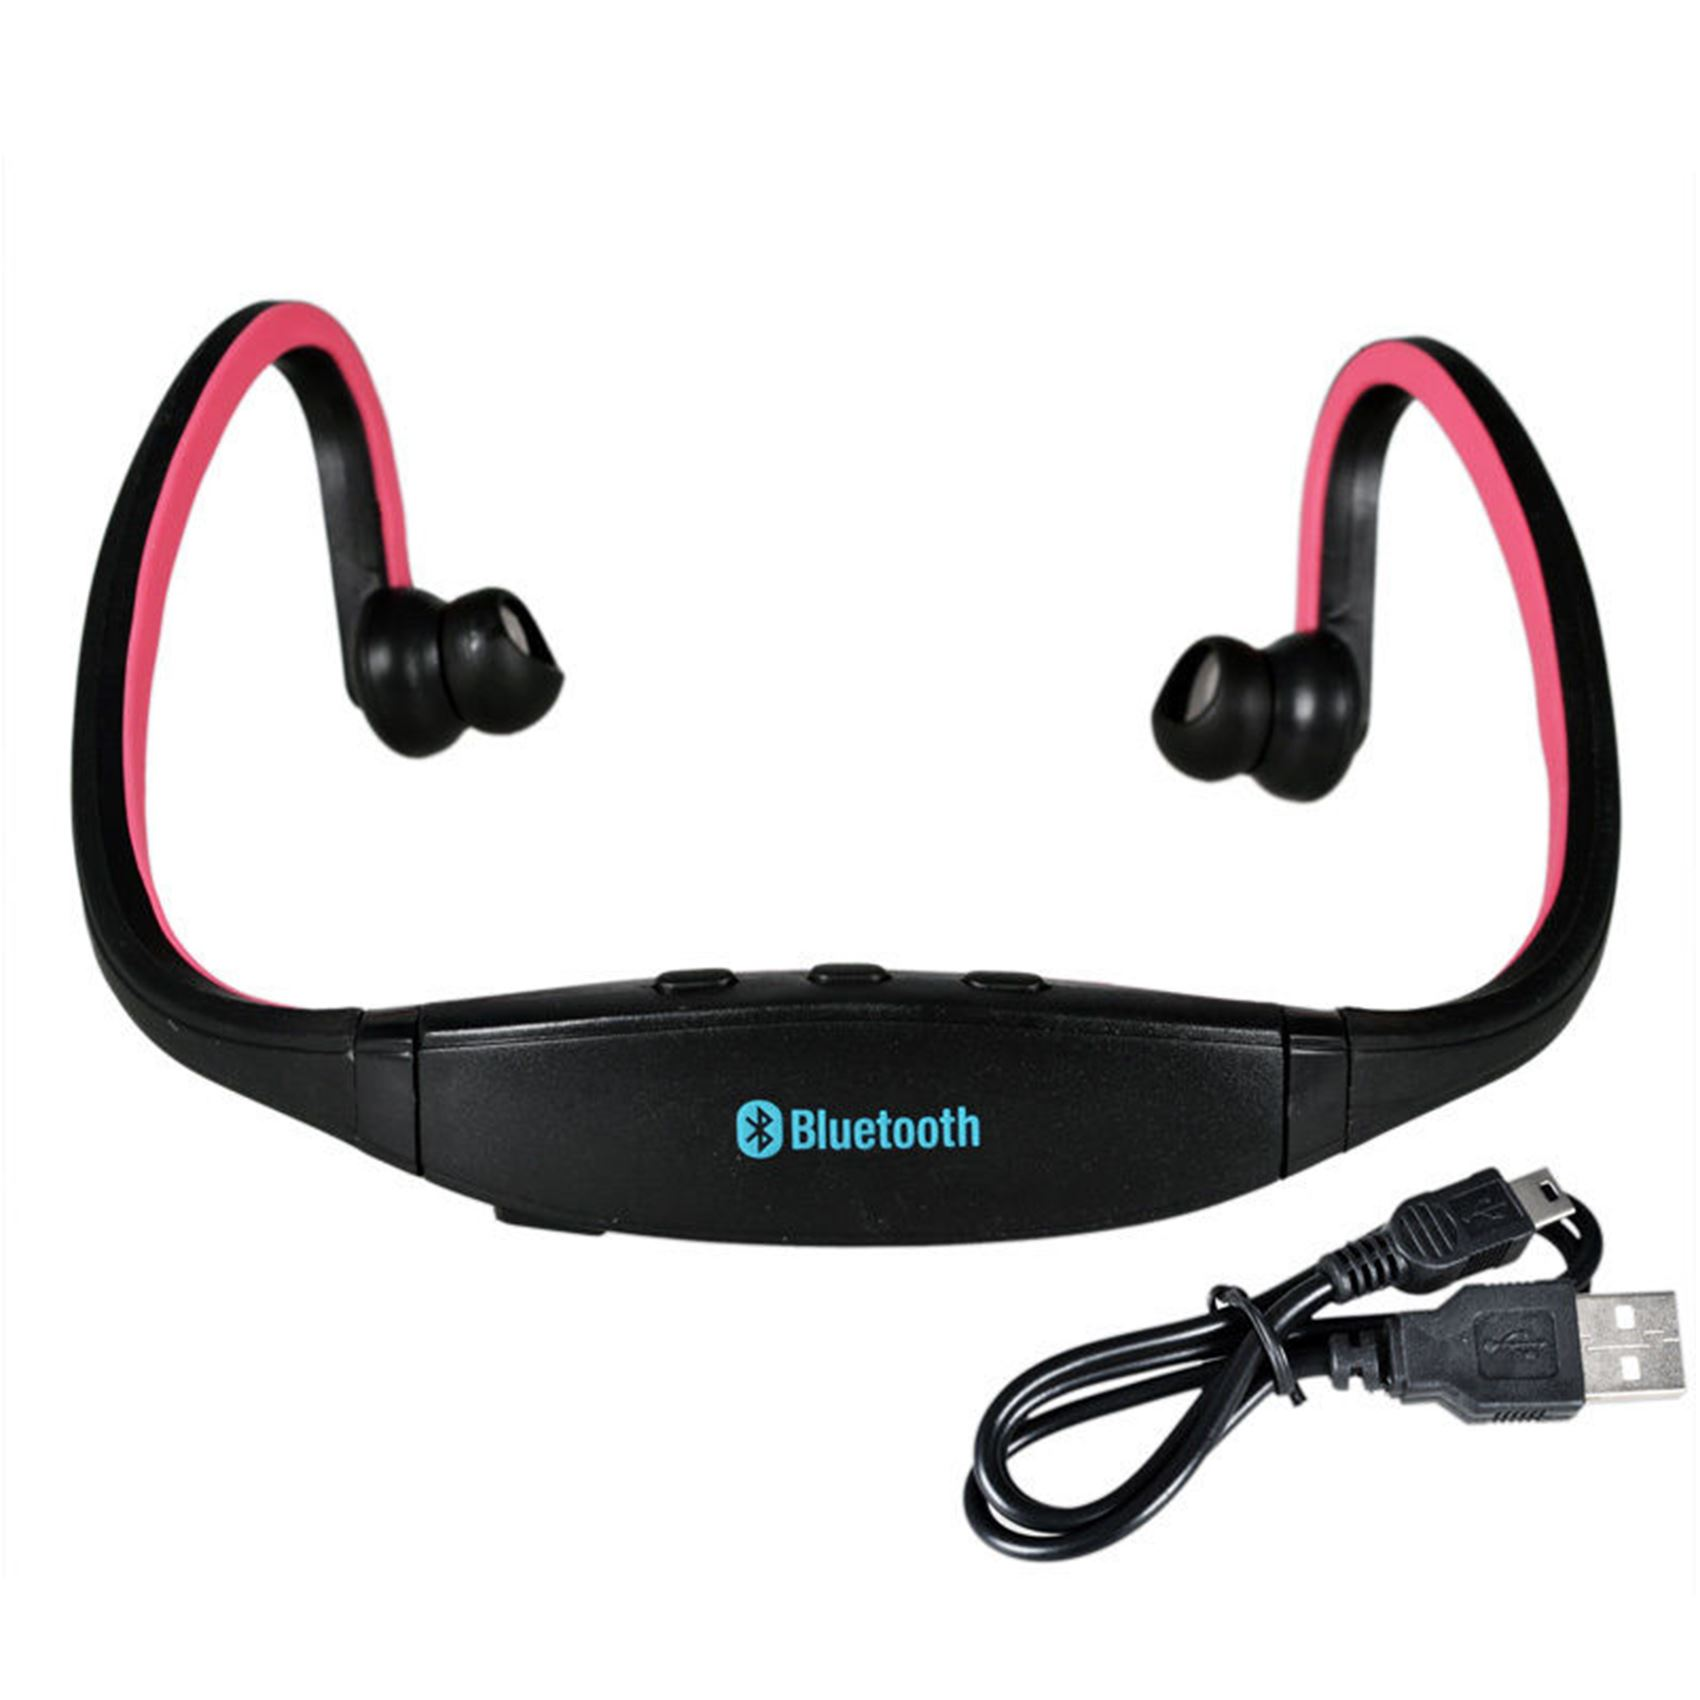 new stereo wireless bluetooth headphones headset sports. Black Bedroom Furniture Sets. Home Design Ideas